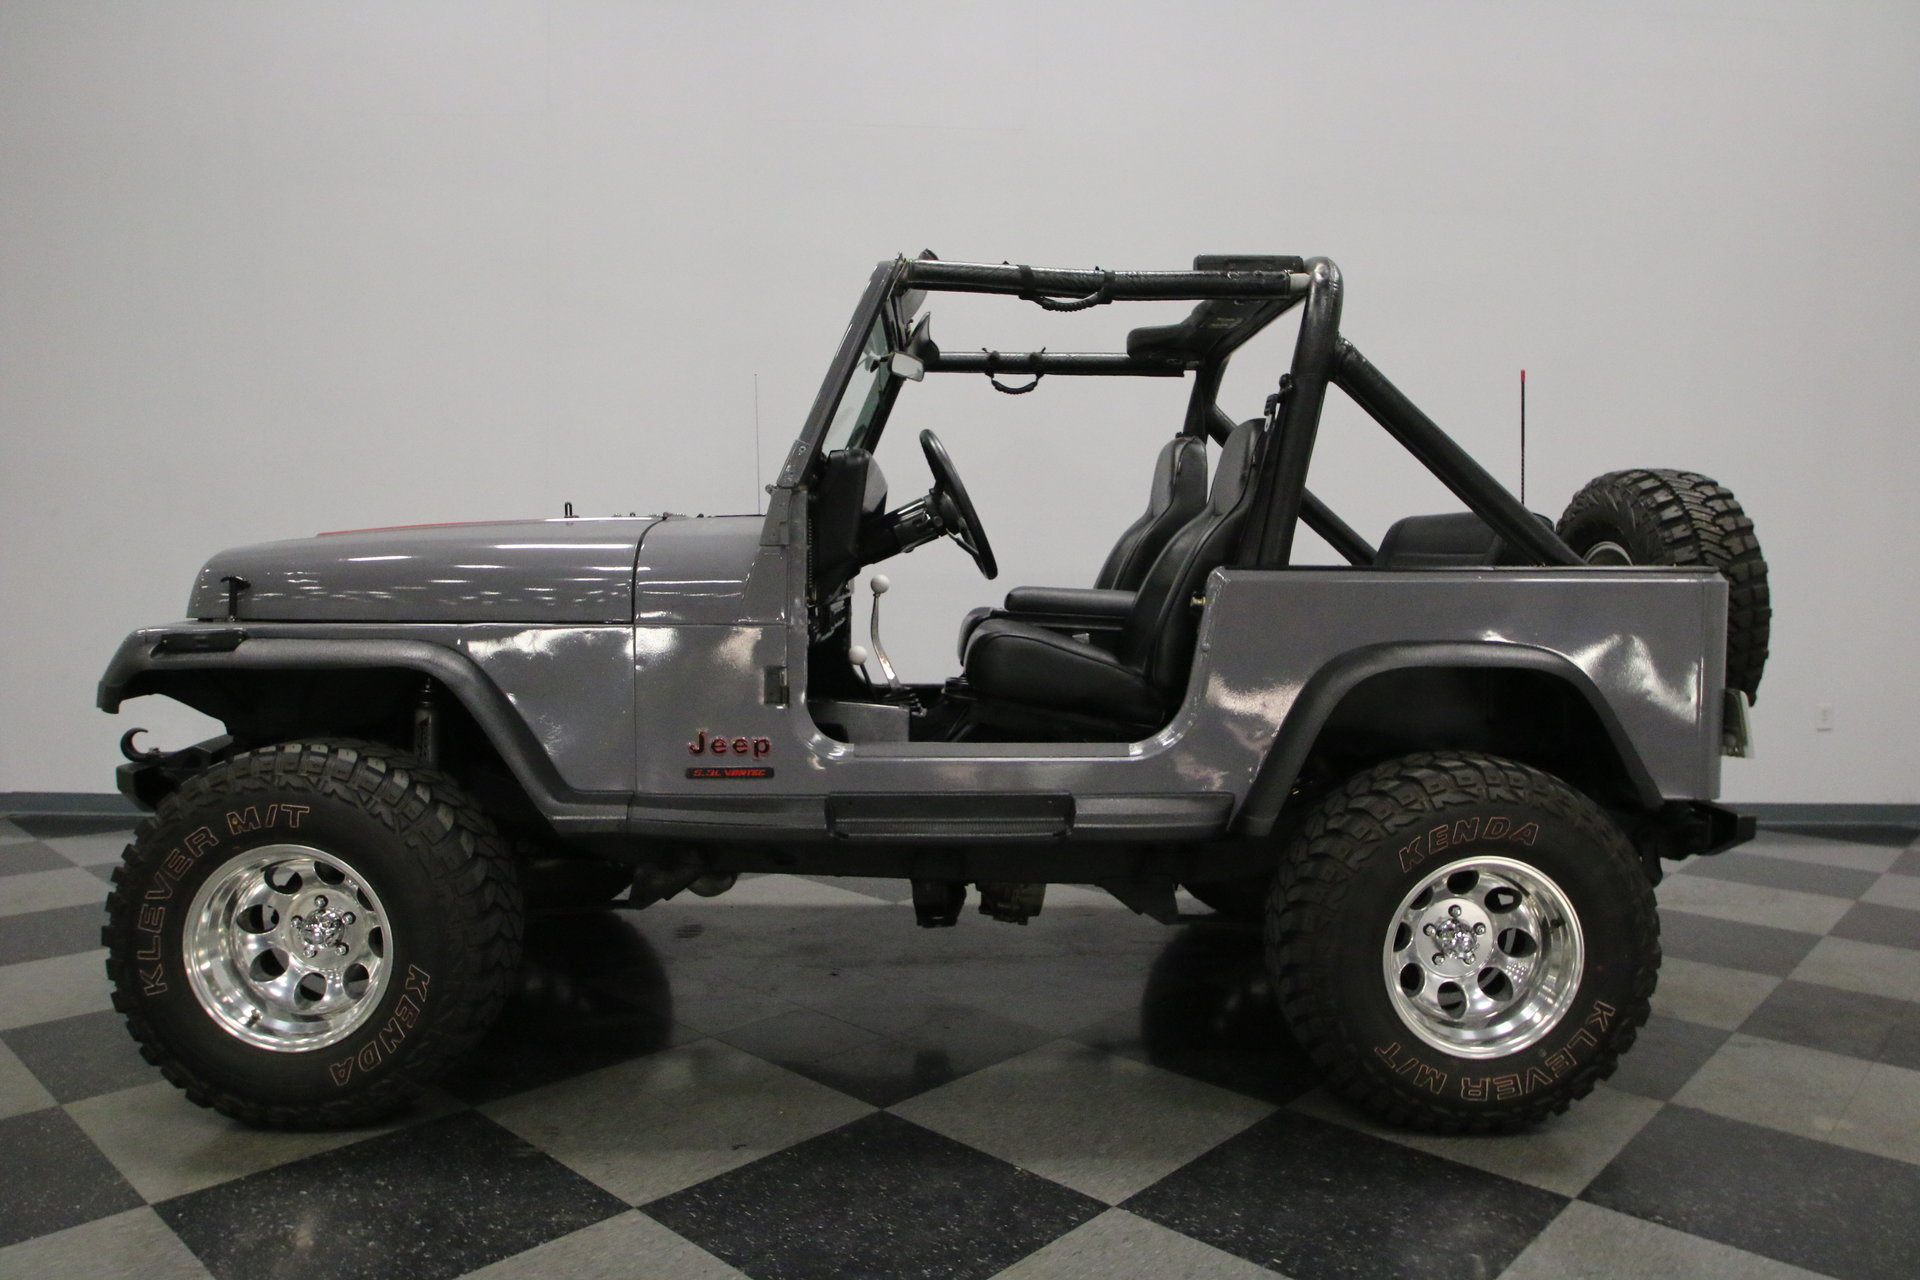 1987 Jeep Wrangler Streetside Classics The Nations Trusted Outline View 360